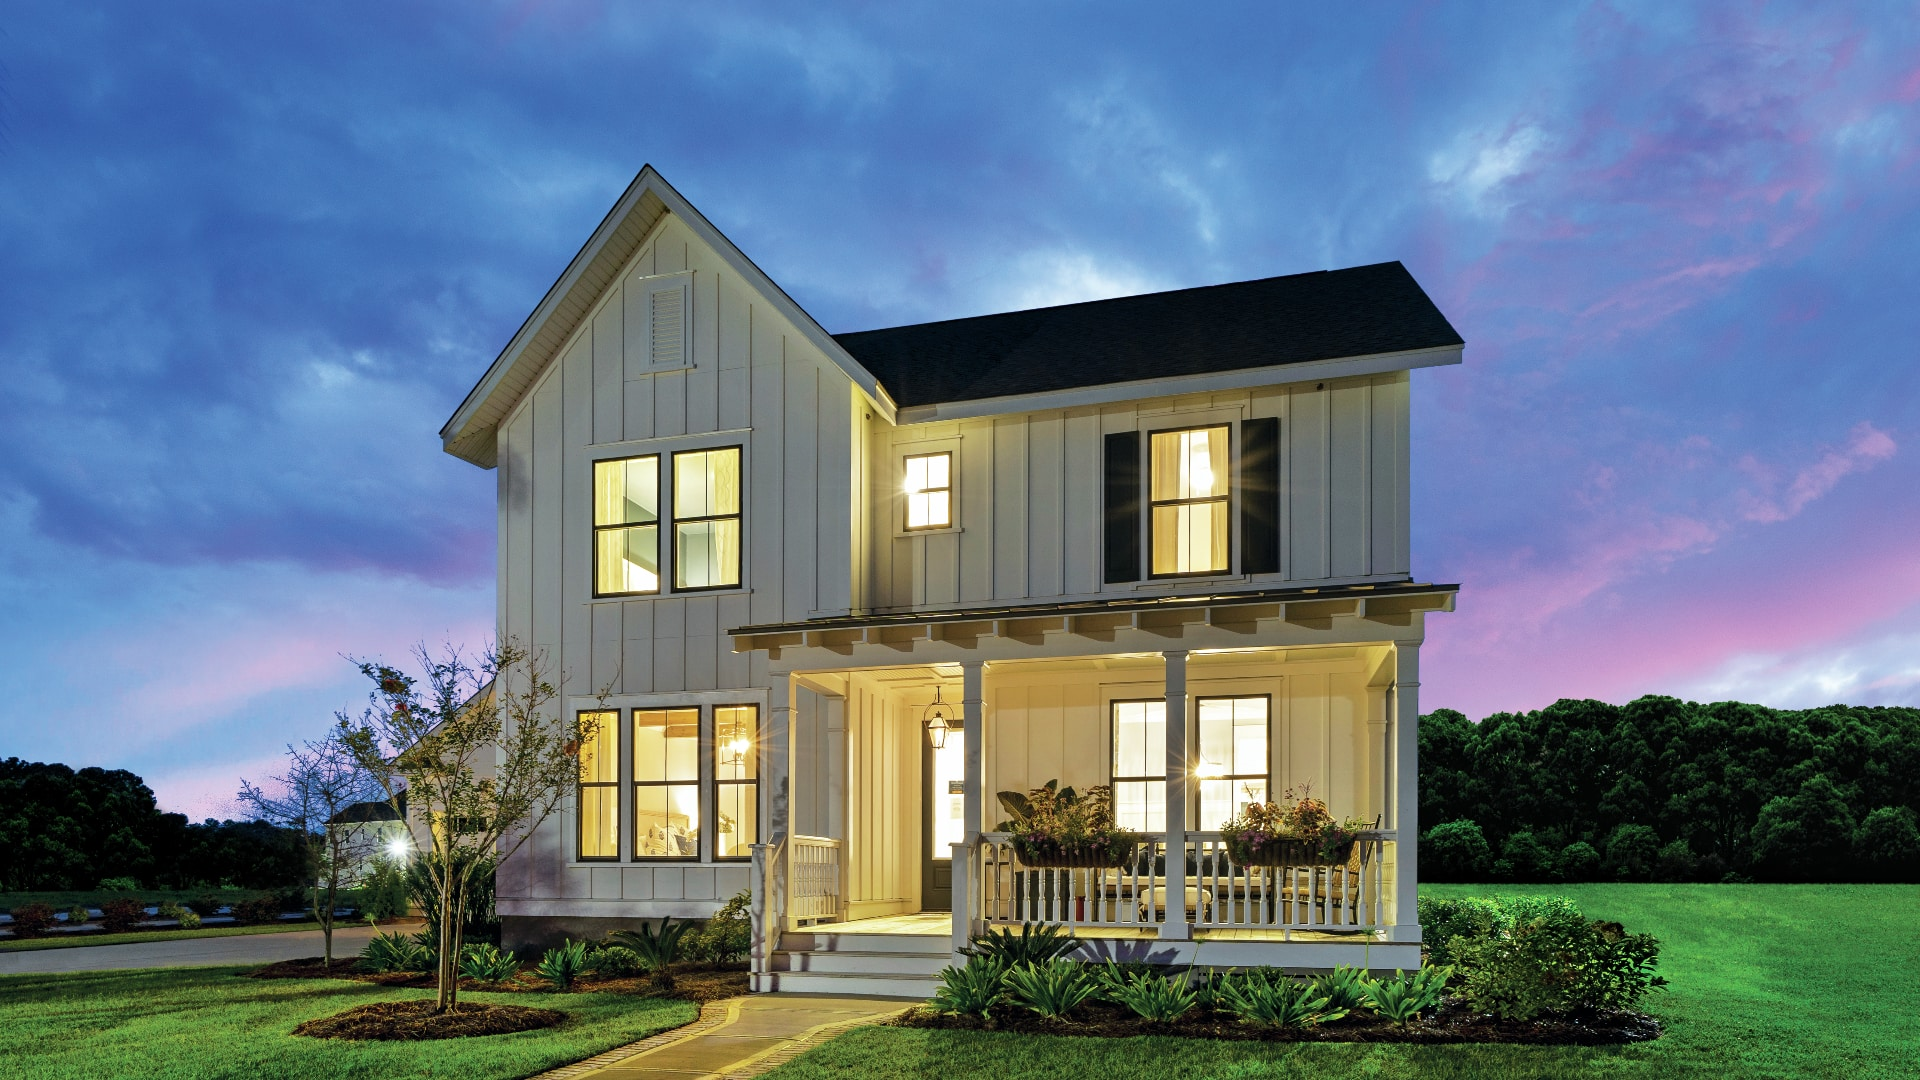 Beautiful exterior home designs with covered front porches for outdoor living